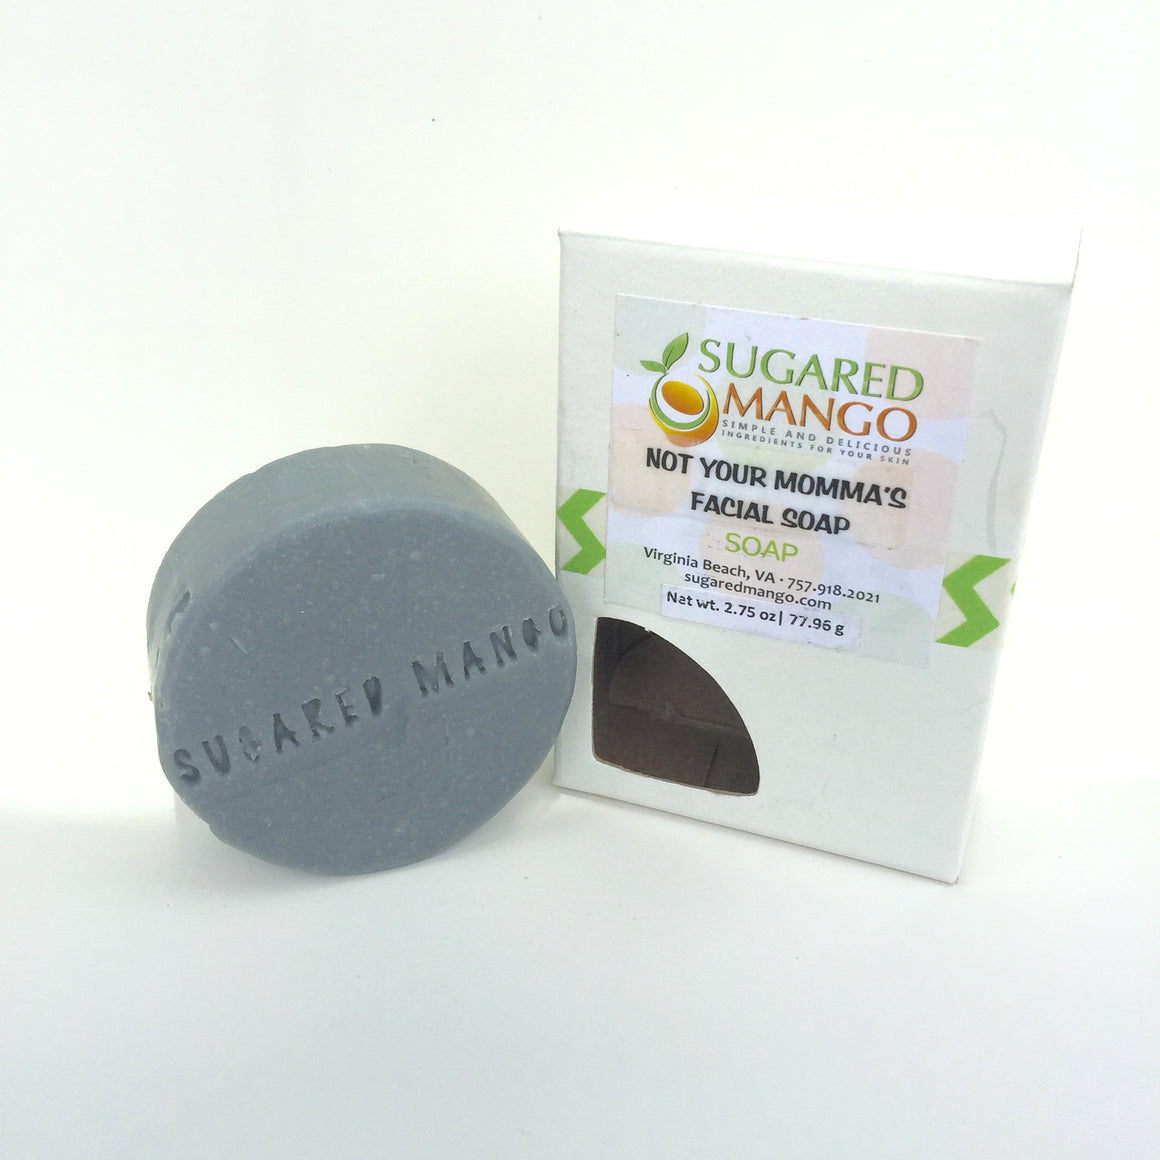 Not Your Momma's Facial Soap/Charoal Facial Bar with Essential Oils